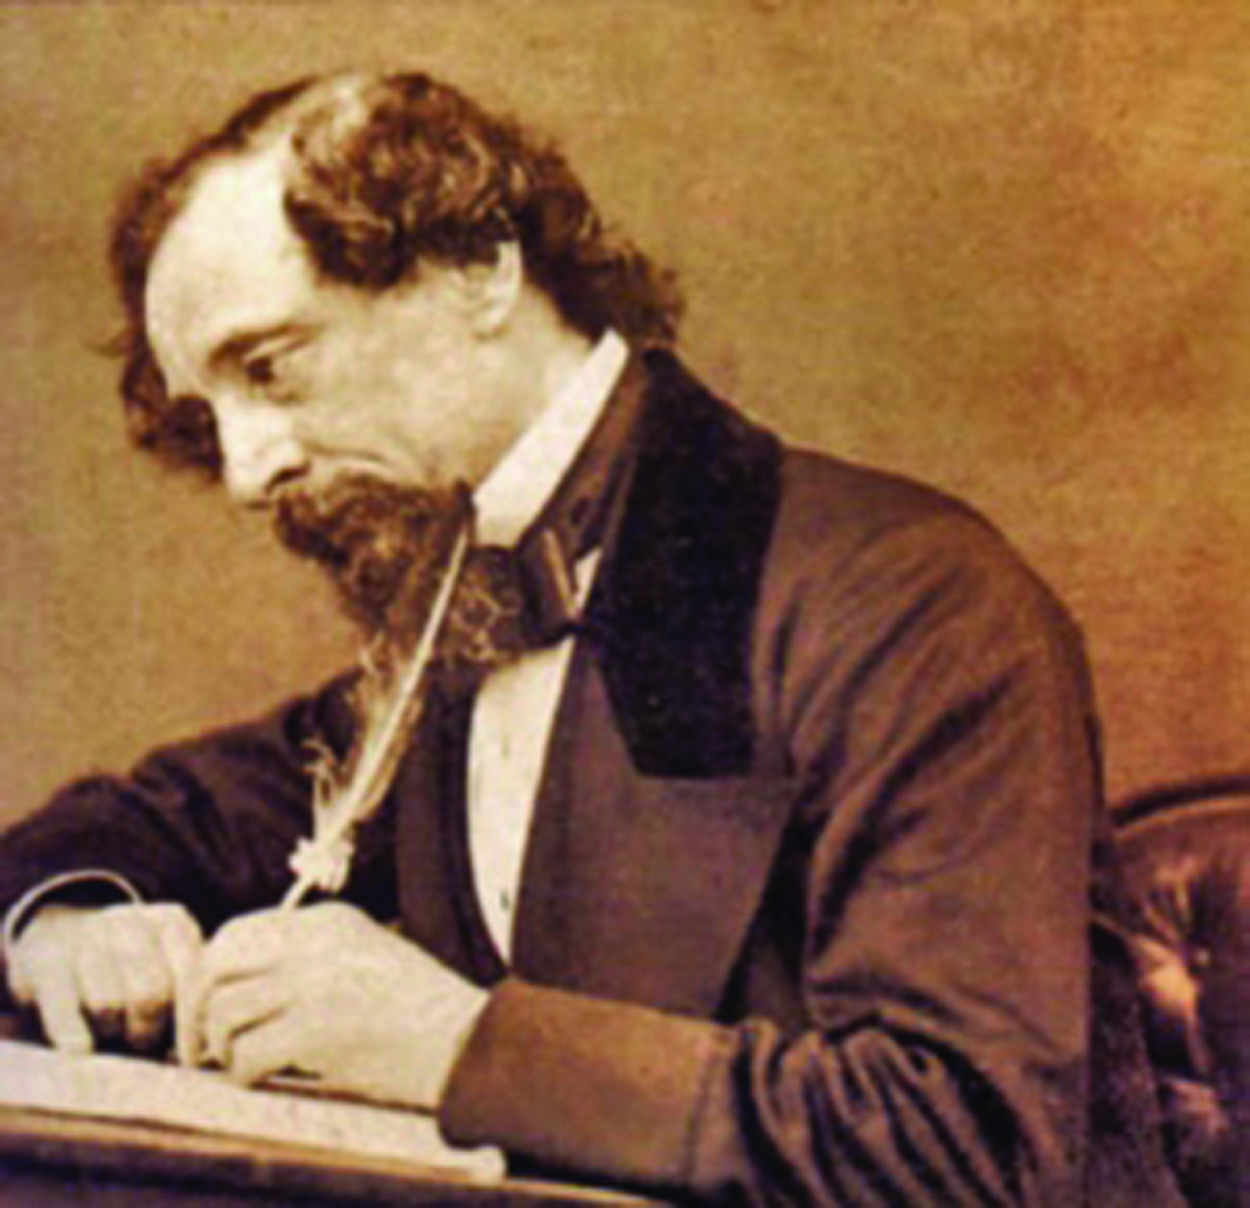 charles dickens writings The works of charles dickens: complete & unabridged (oliver twist / great  expectations / a tale of two cities) [charles dickens] on amazoncom free.